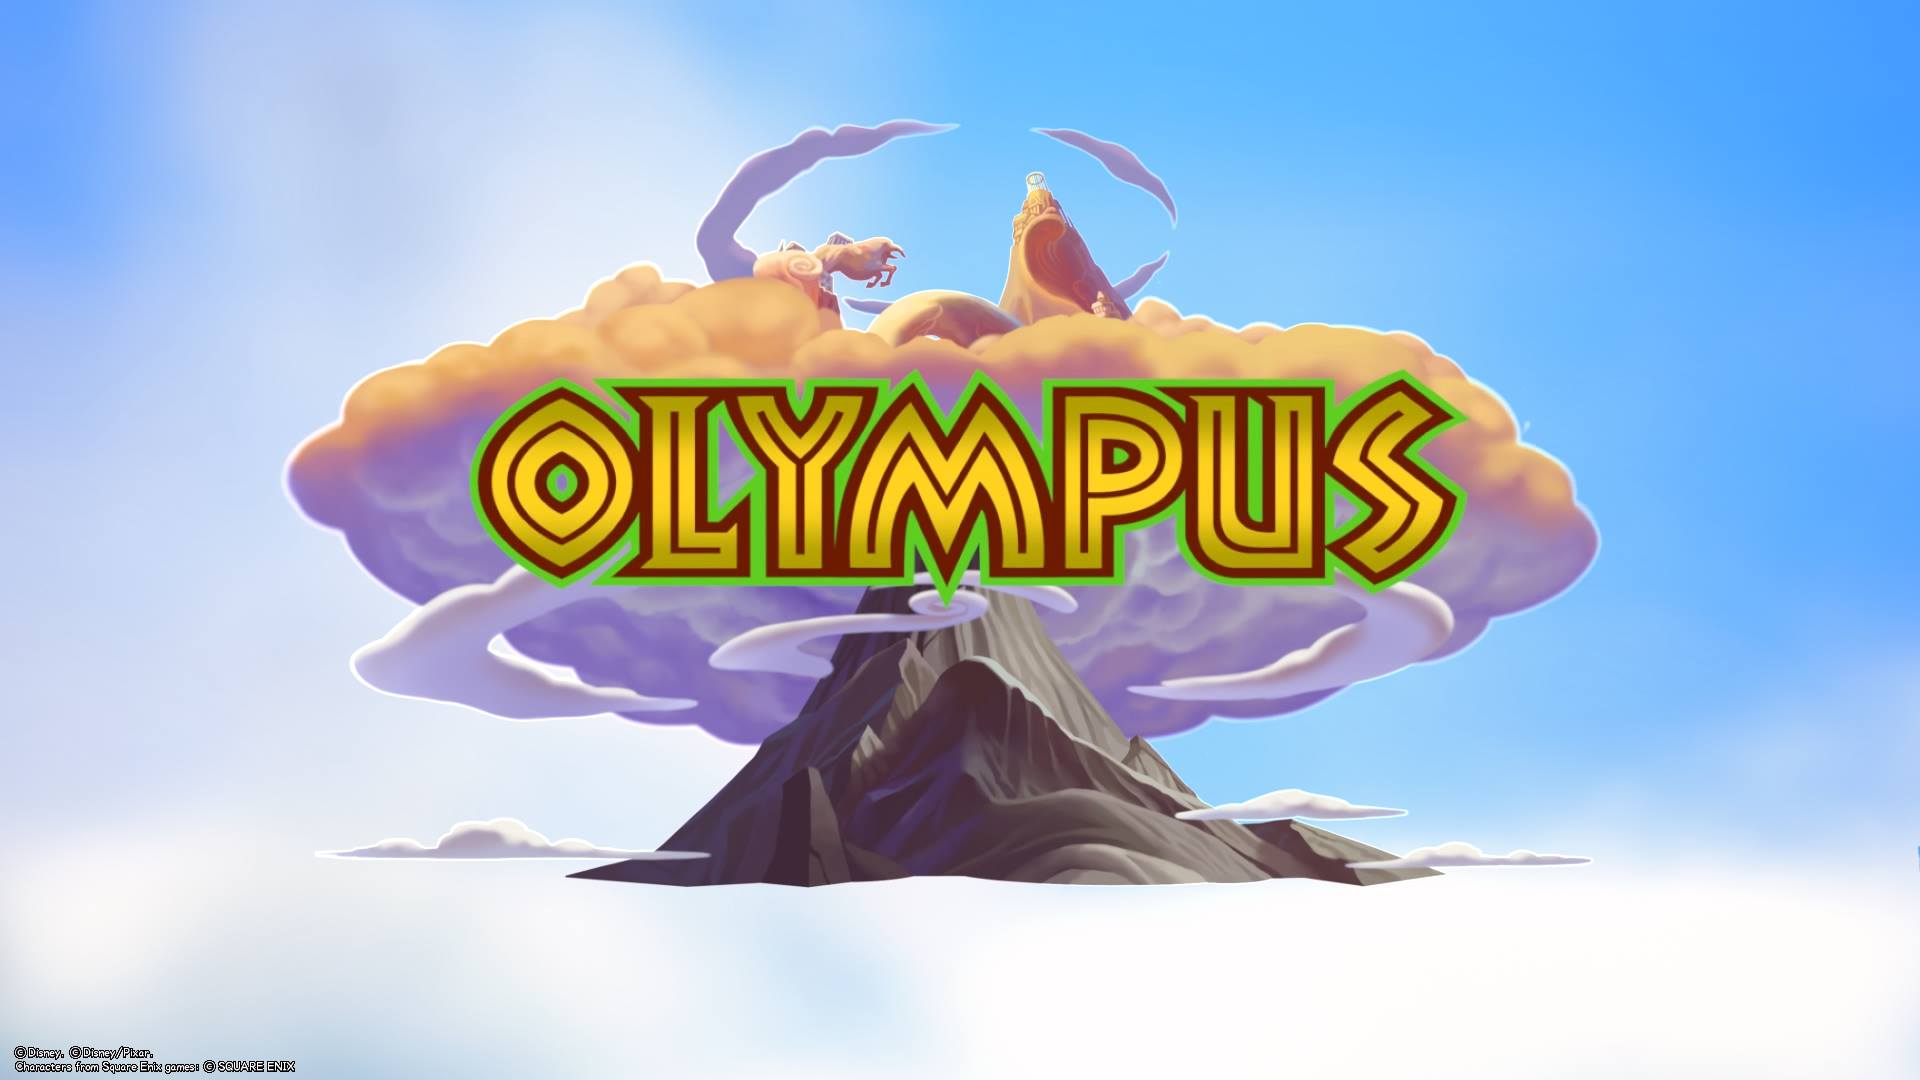 The first world you explore in Kingdom Hearts 3 is Olympus.